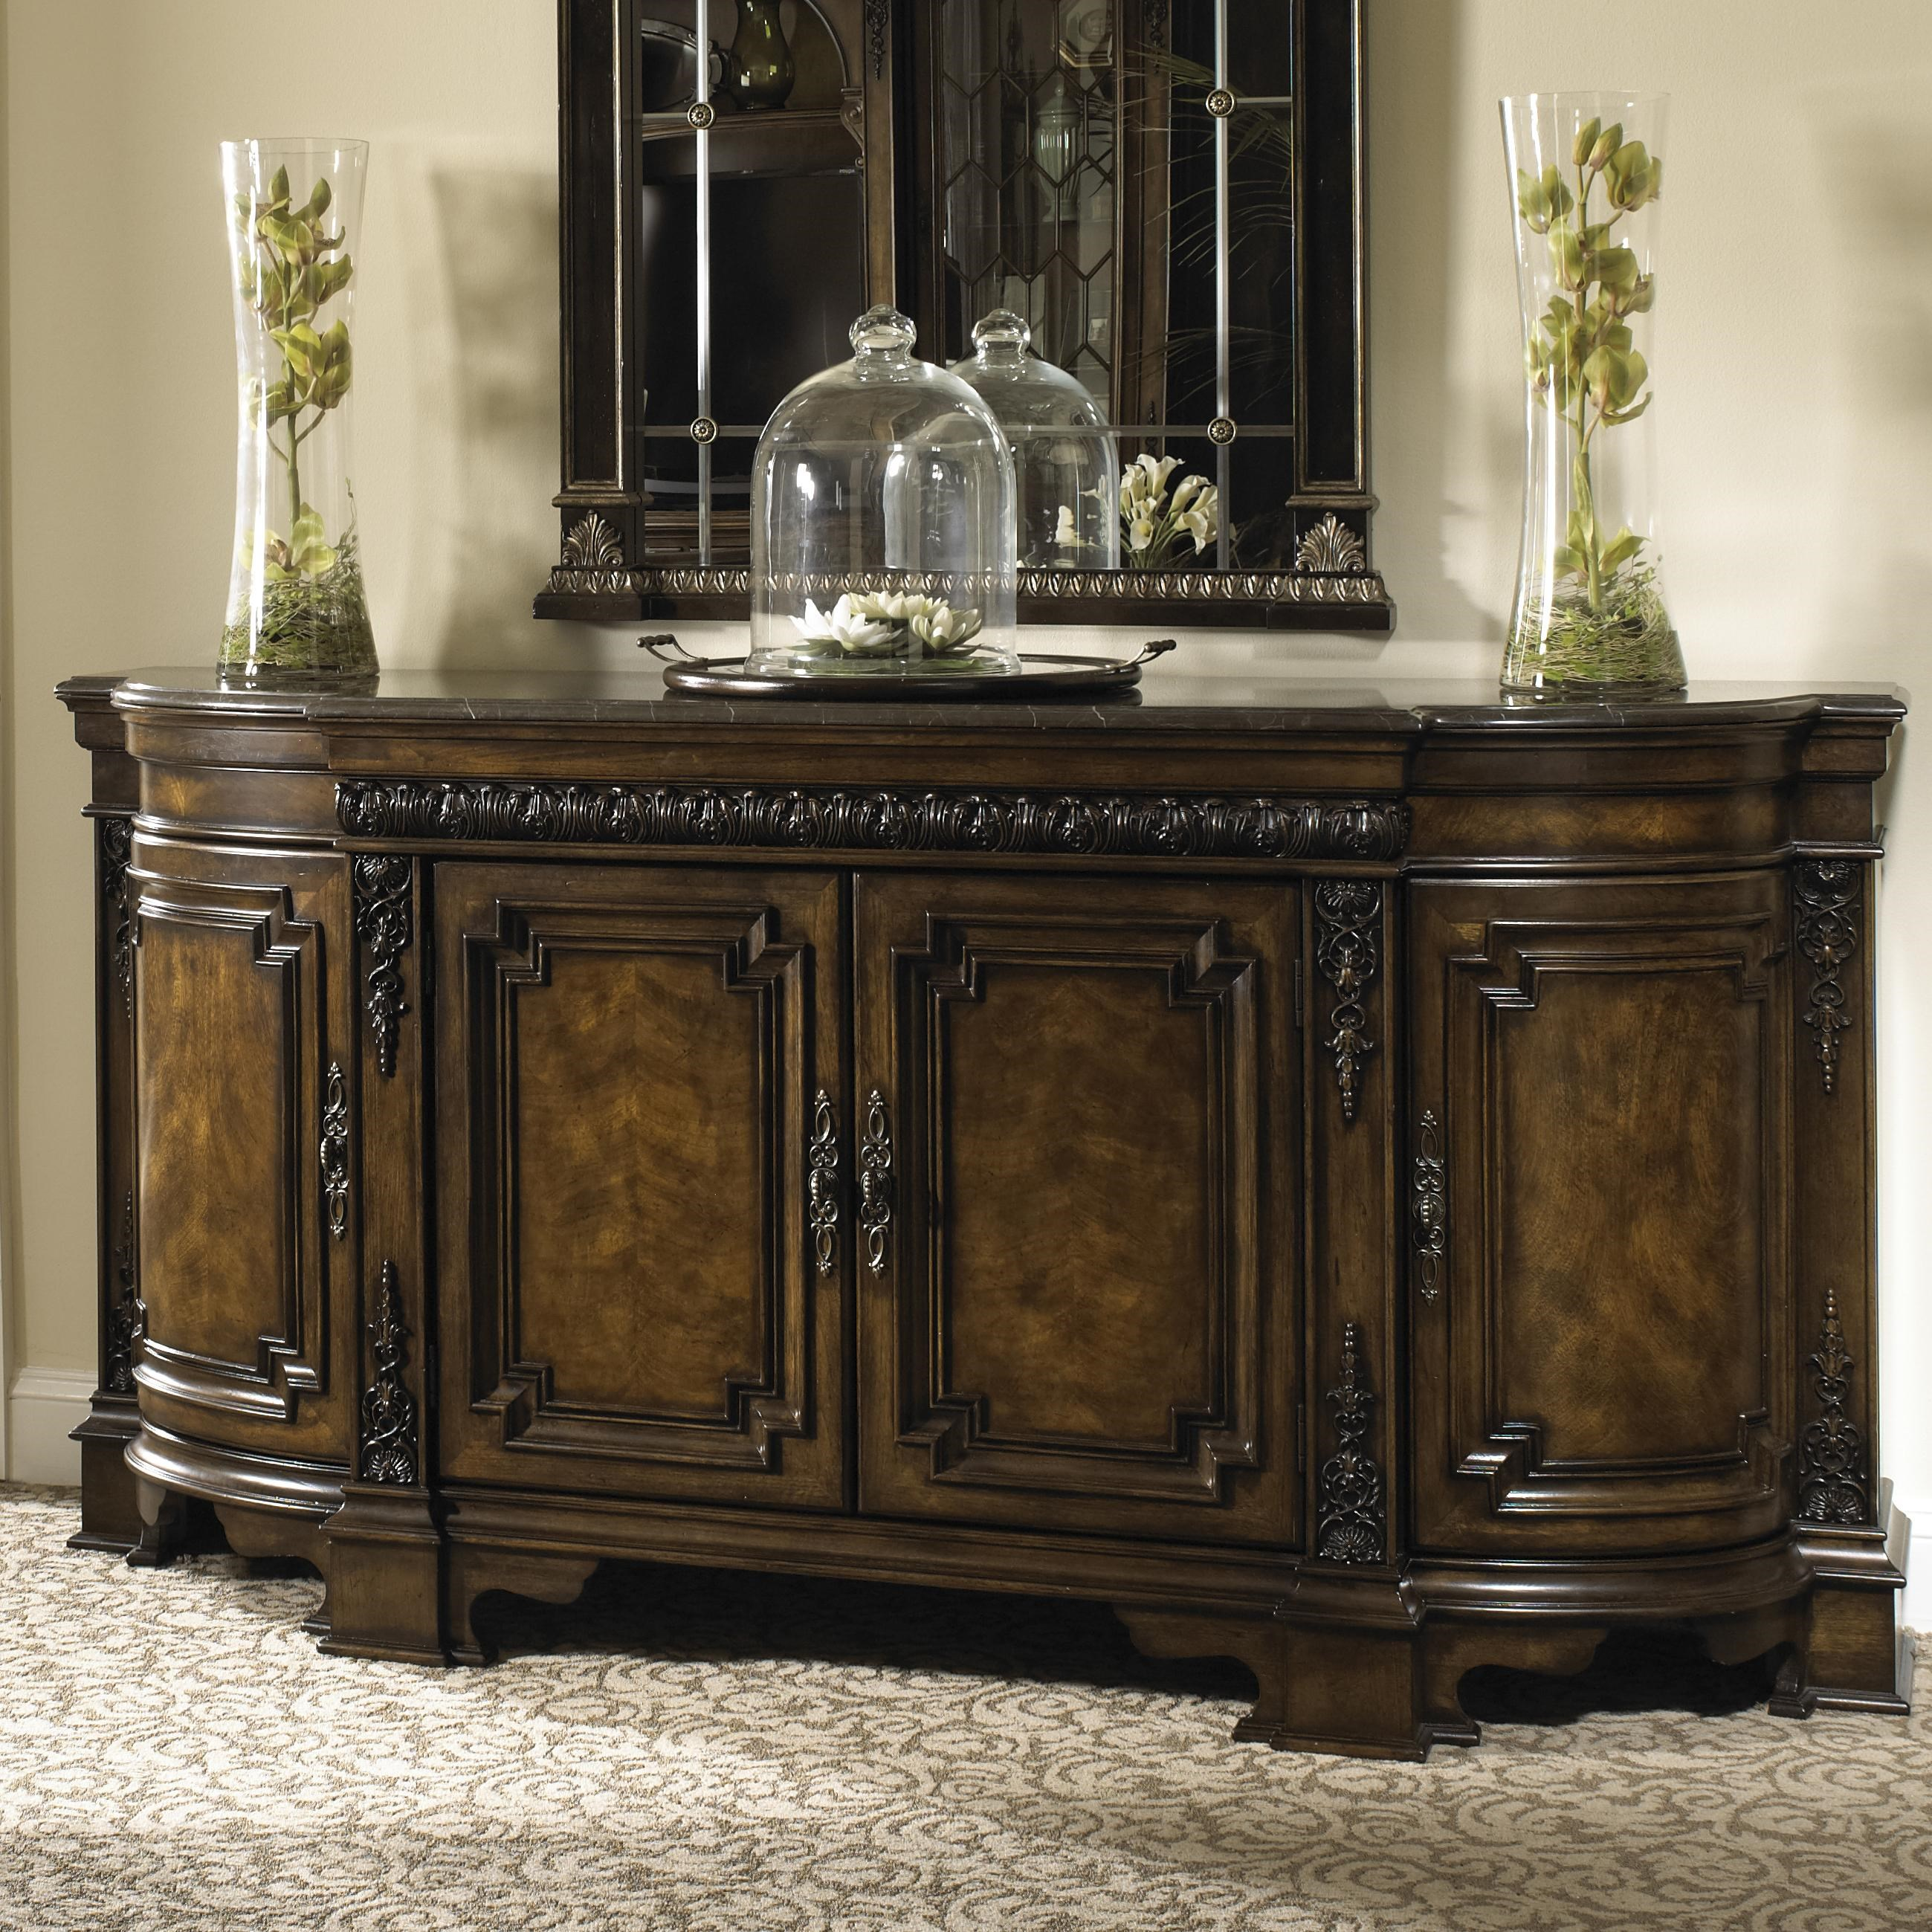 Michael Harrison Collection Belvedere Dining Credenza With Wood Top,  Gallery Rail, And Silverware Storage